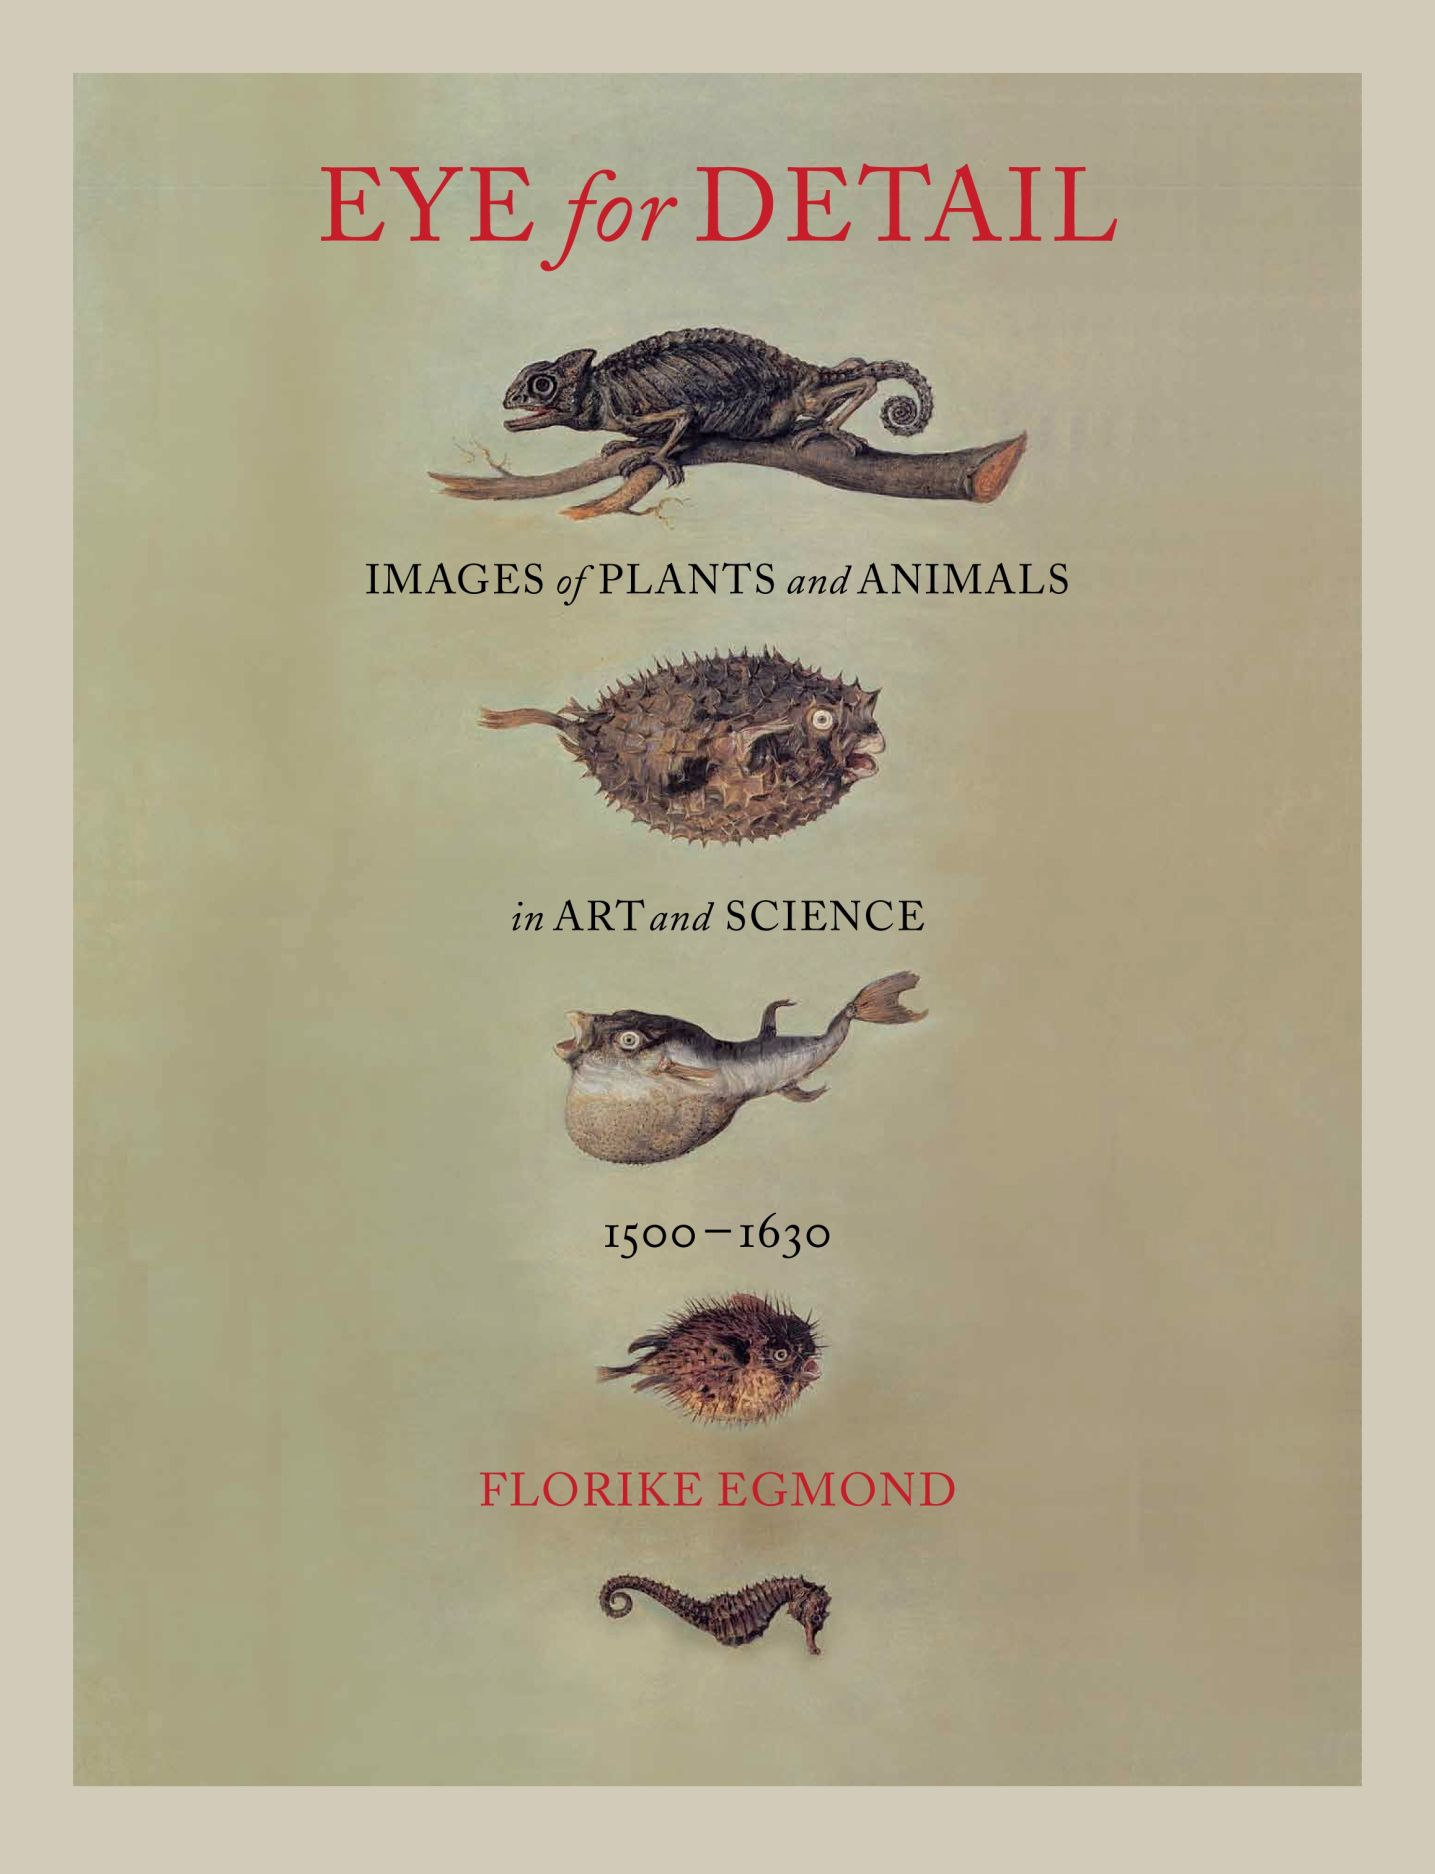 Eye for Detail: Images of Plants and Animals in Art and Science, 1500-1630